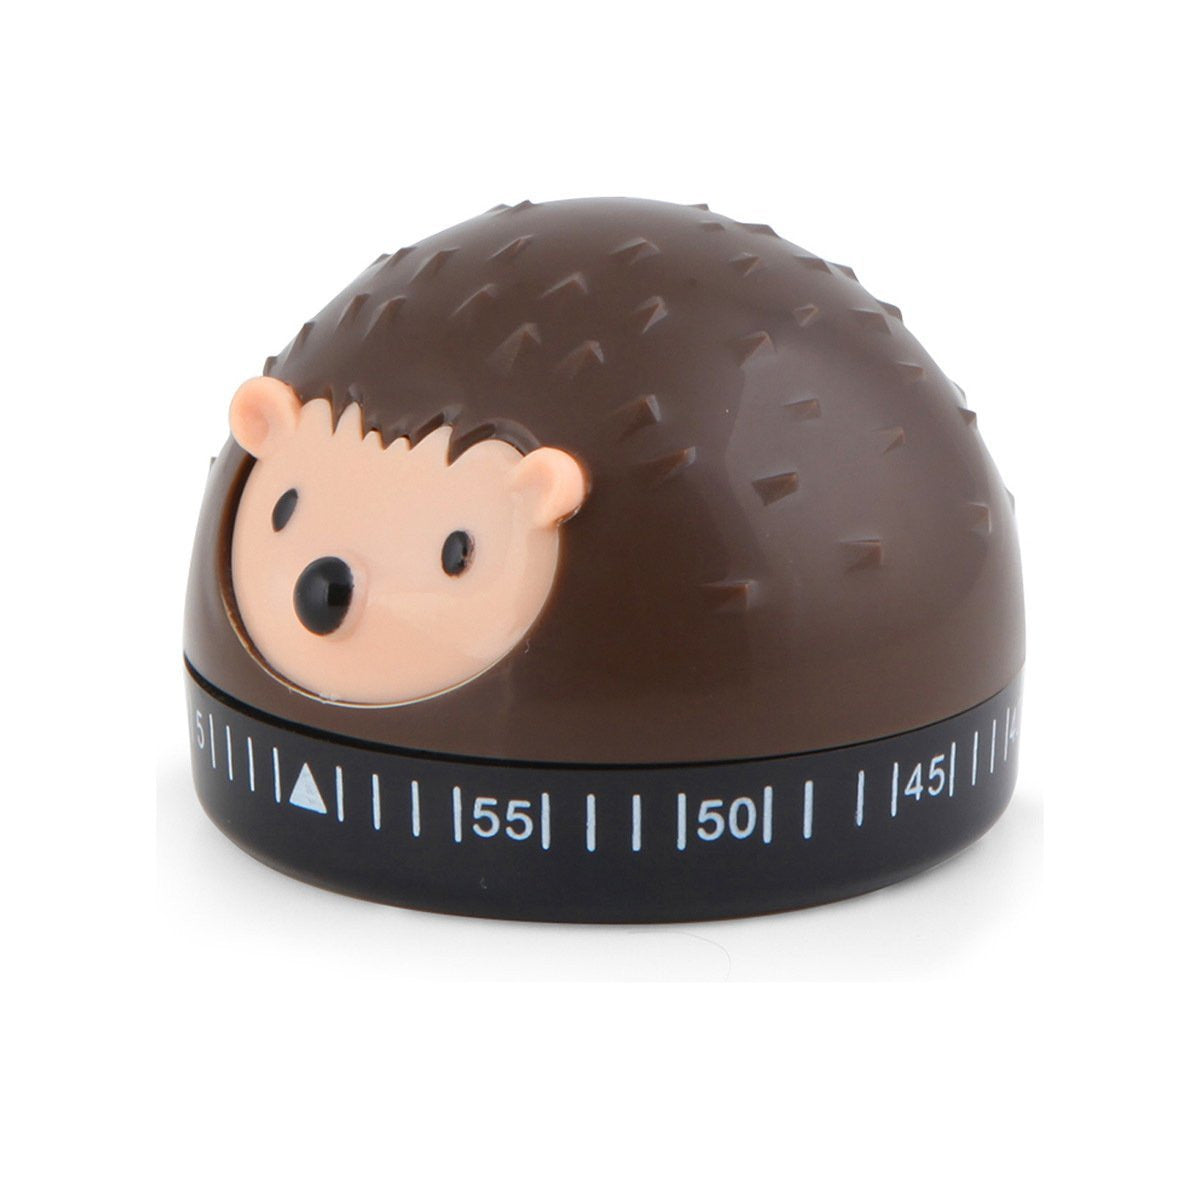 60 Minute Hedgehog Kitchen Timer - Off The Wall Toys and Gifts